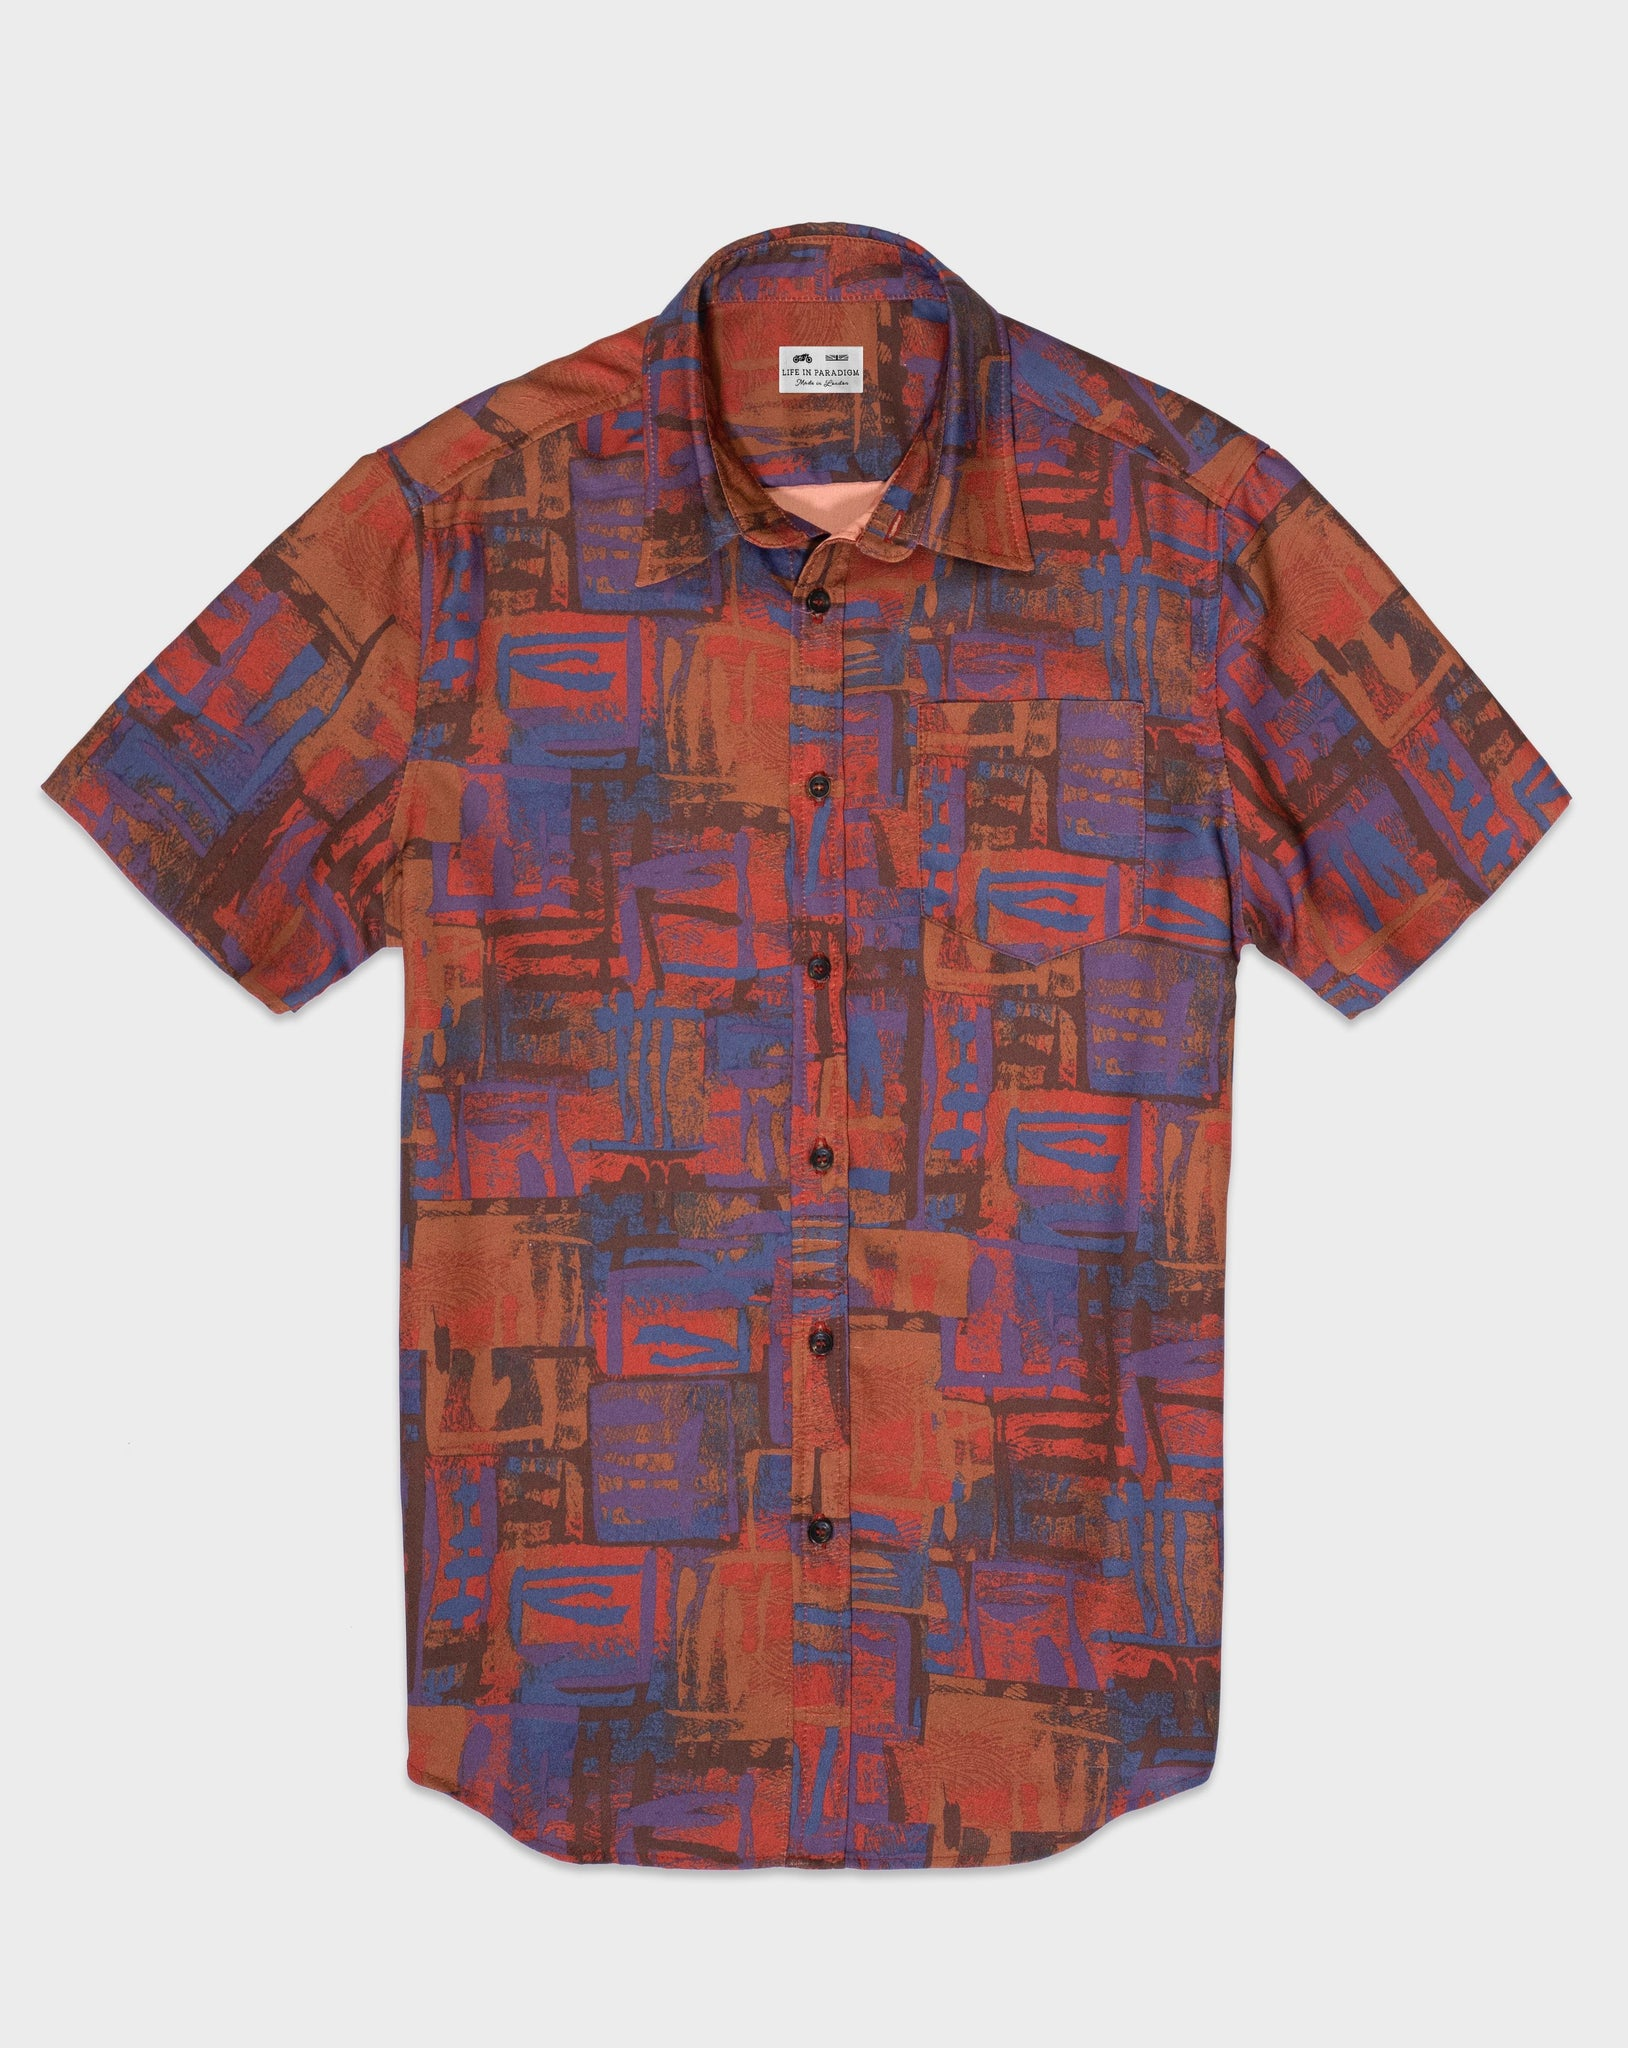 Orange Retro Pattern Short Sleeve Shirt - Life in Paradigm Menswear London